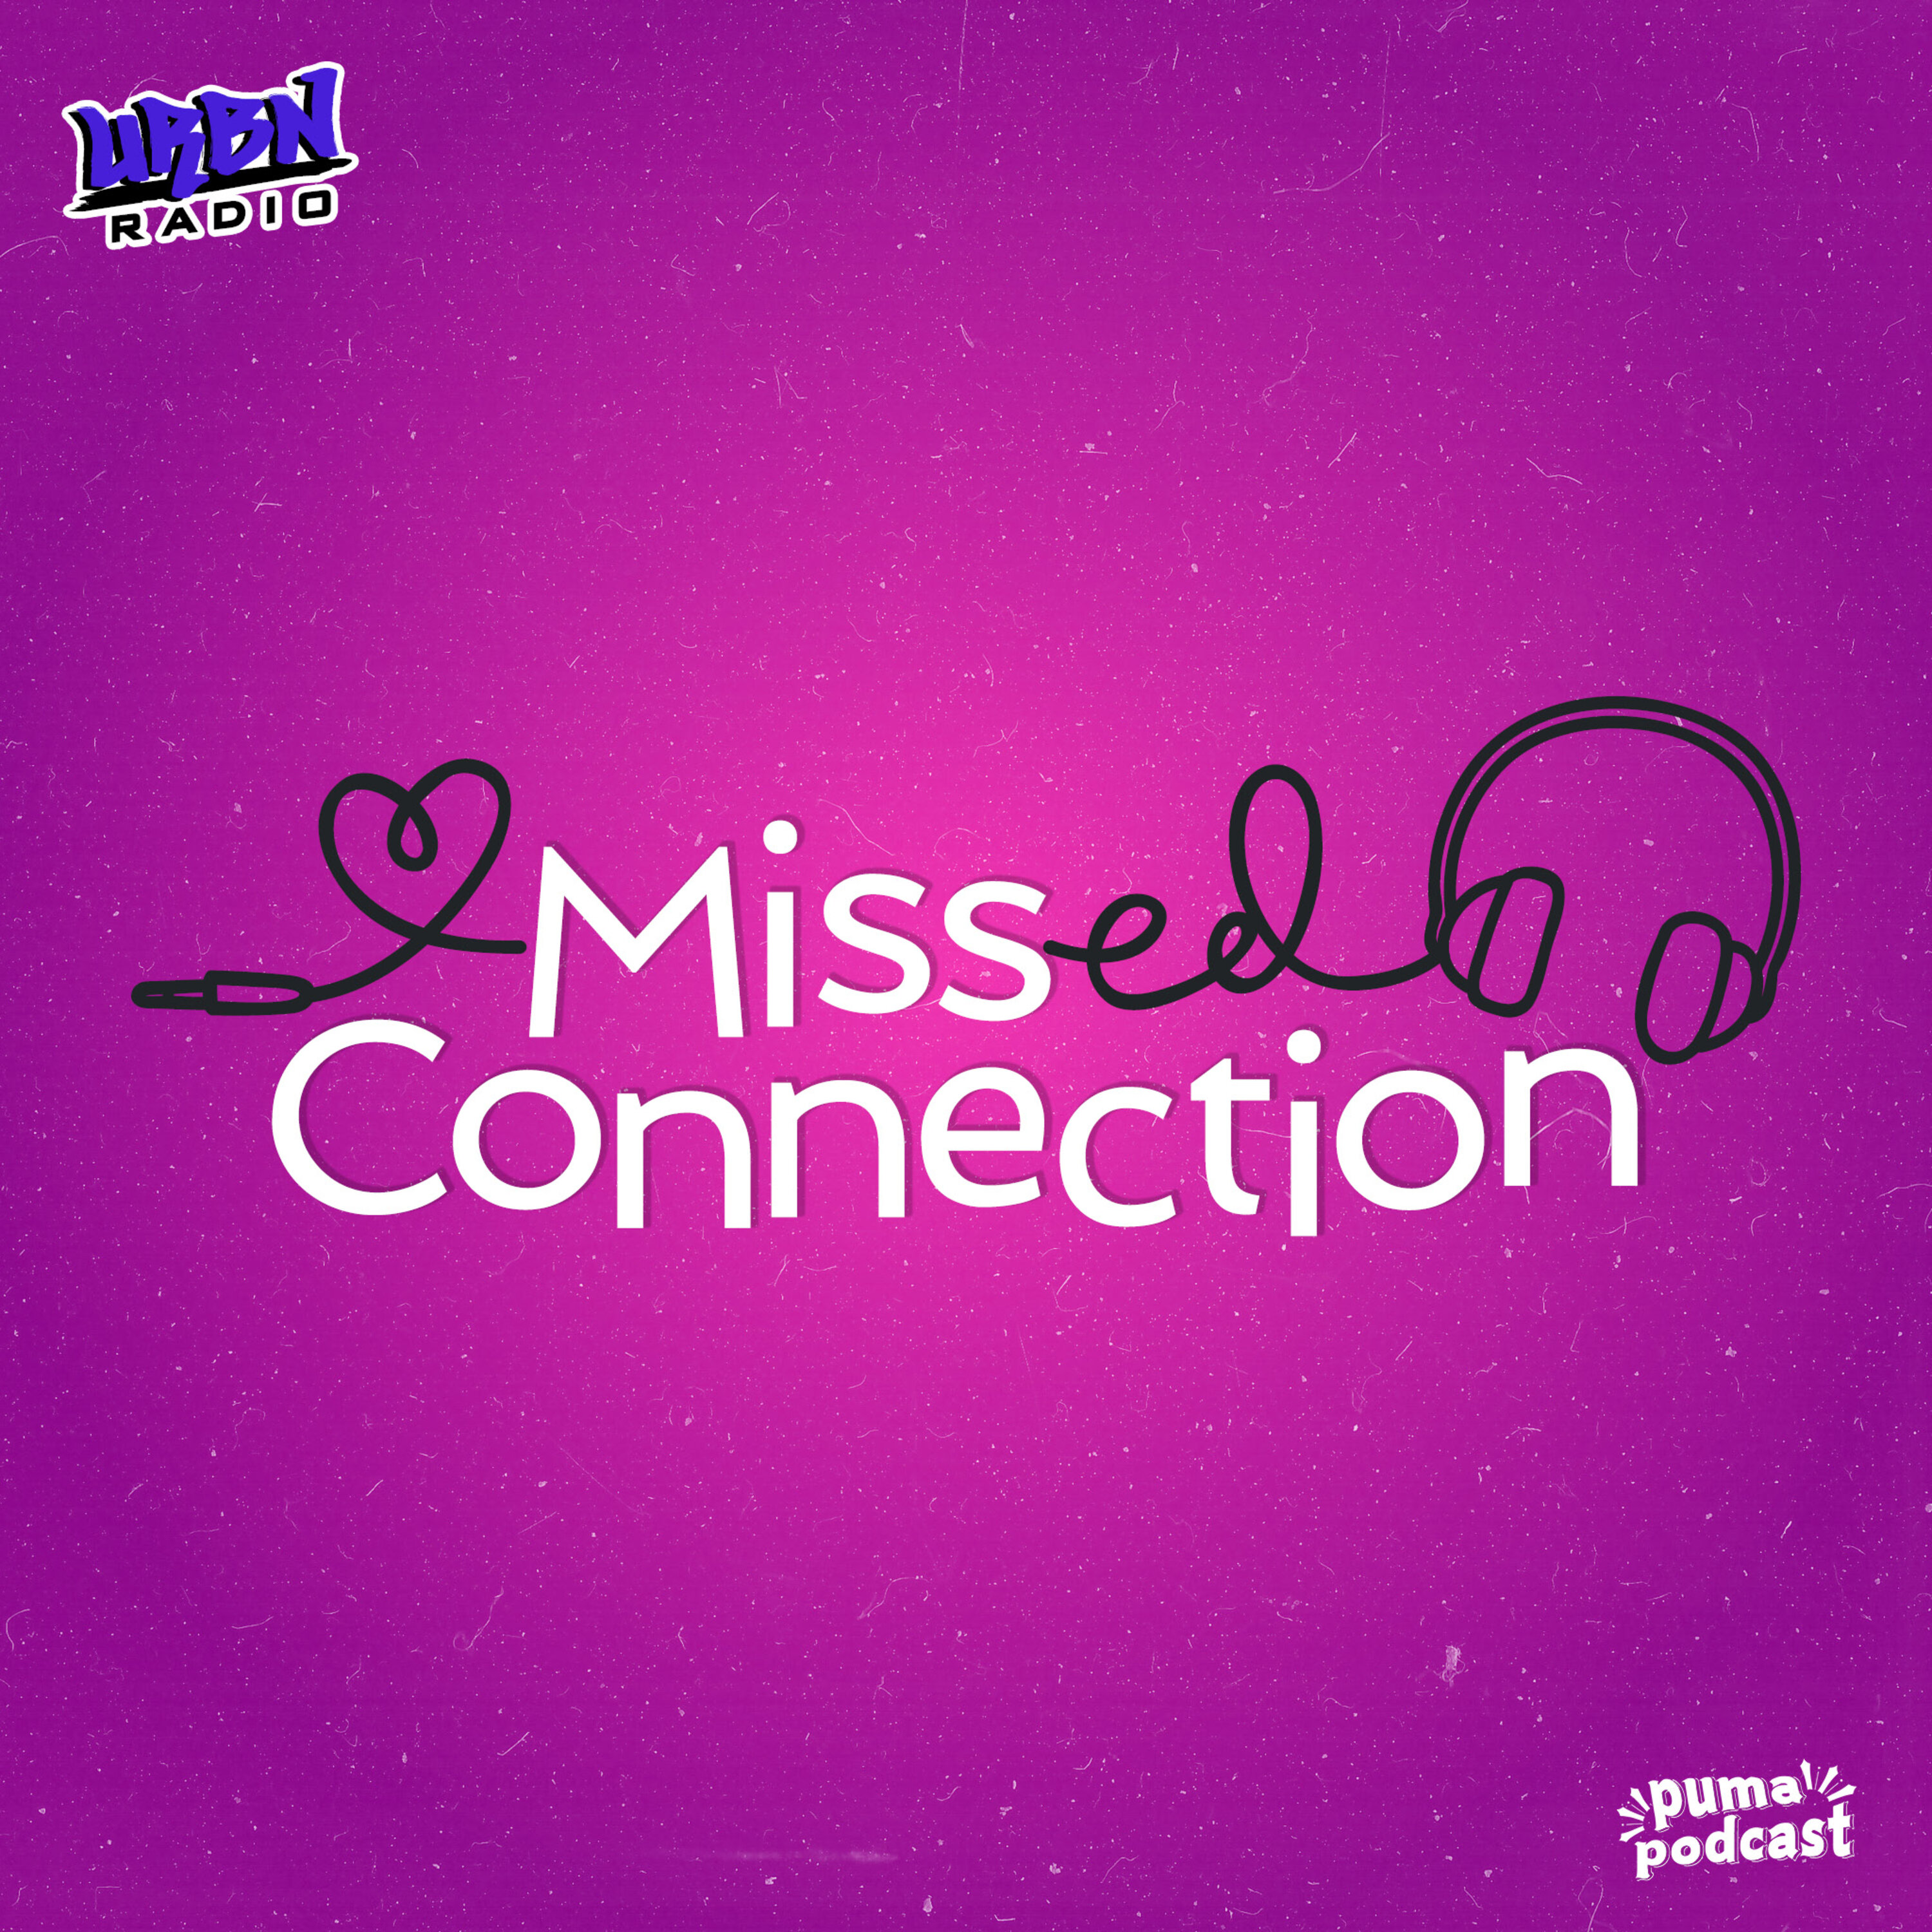 Introducing... Miss Connection